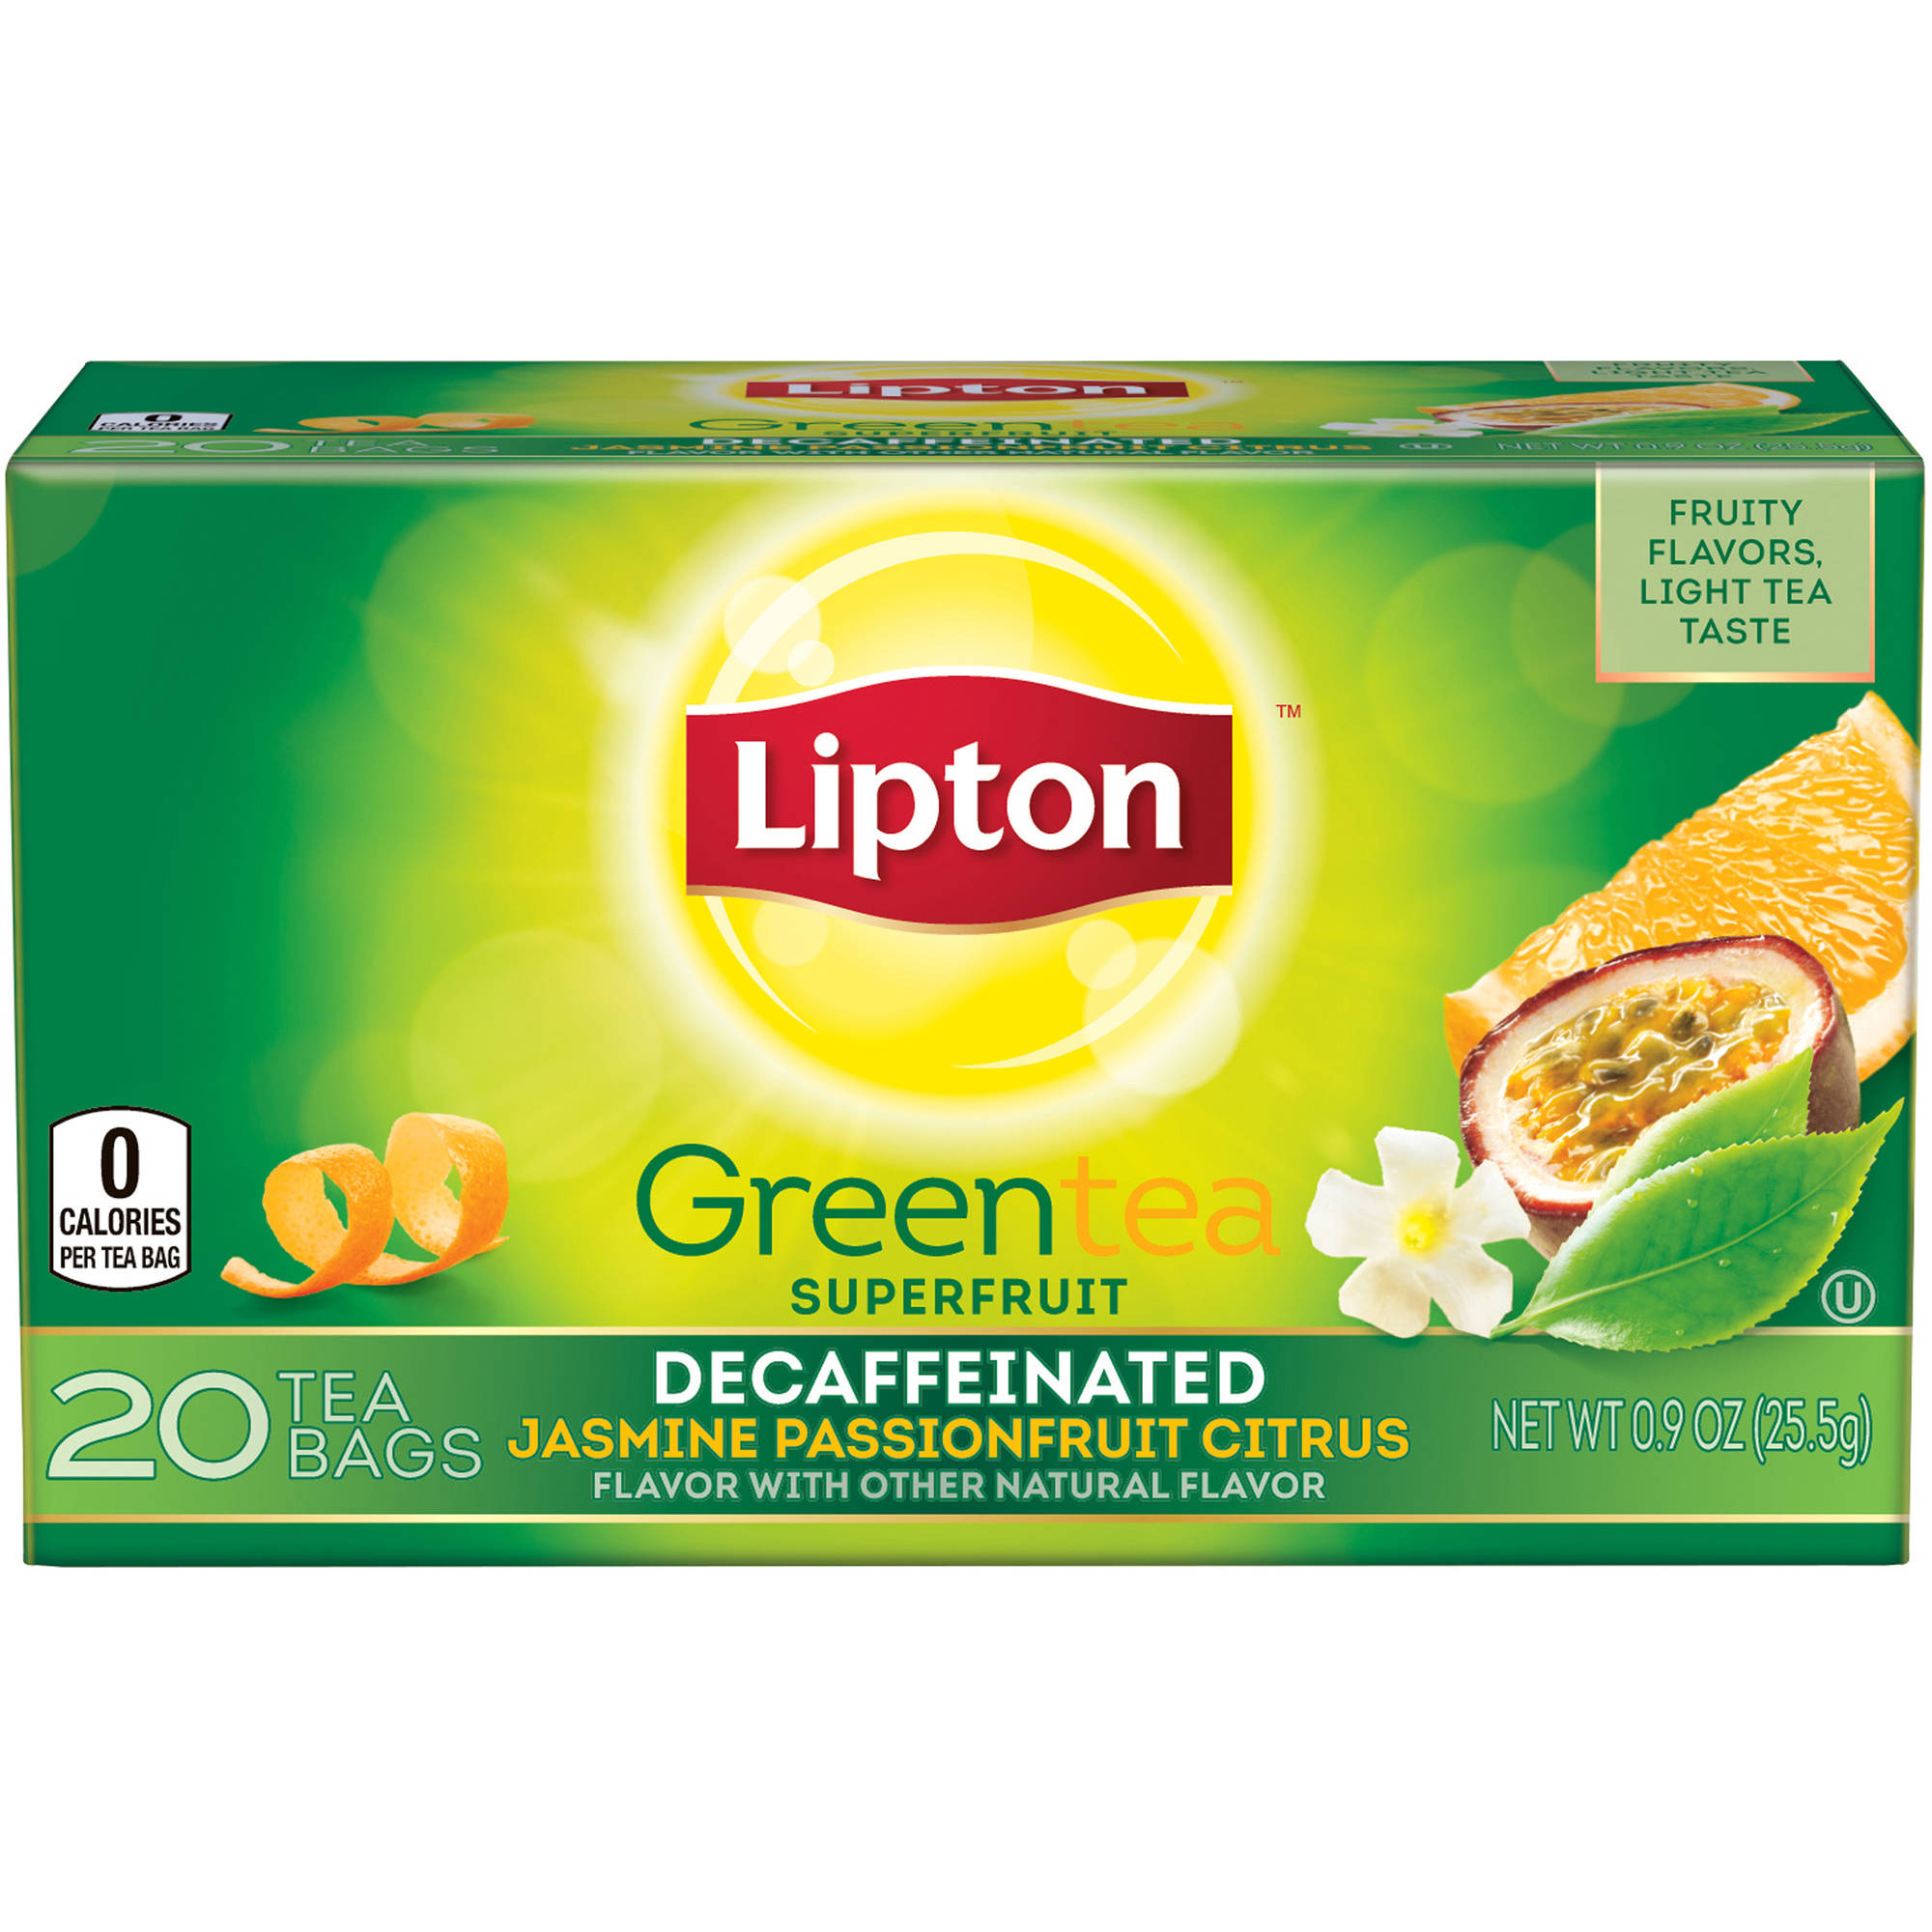 Lipton Decaffeinated Jasmine Passionfruit with Citrus Green Tea, 20 ct